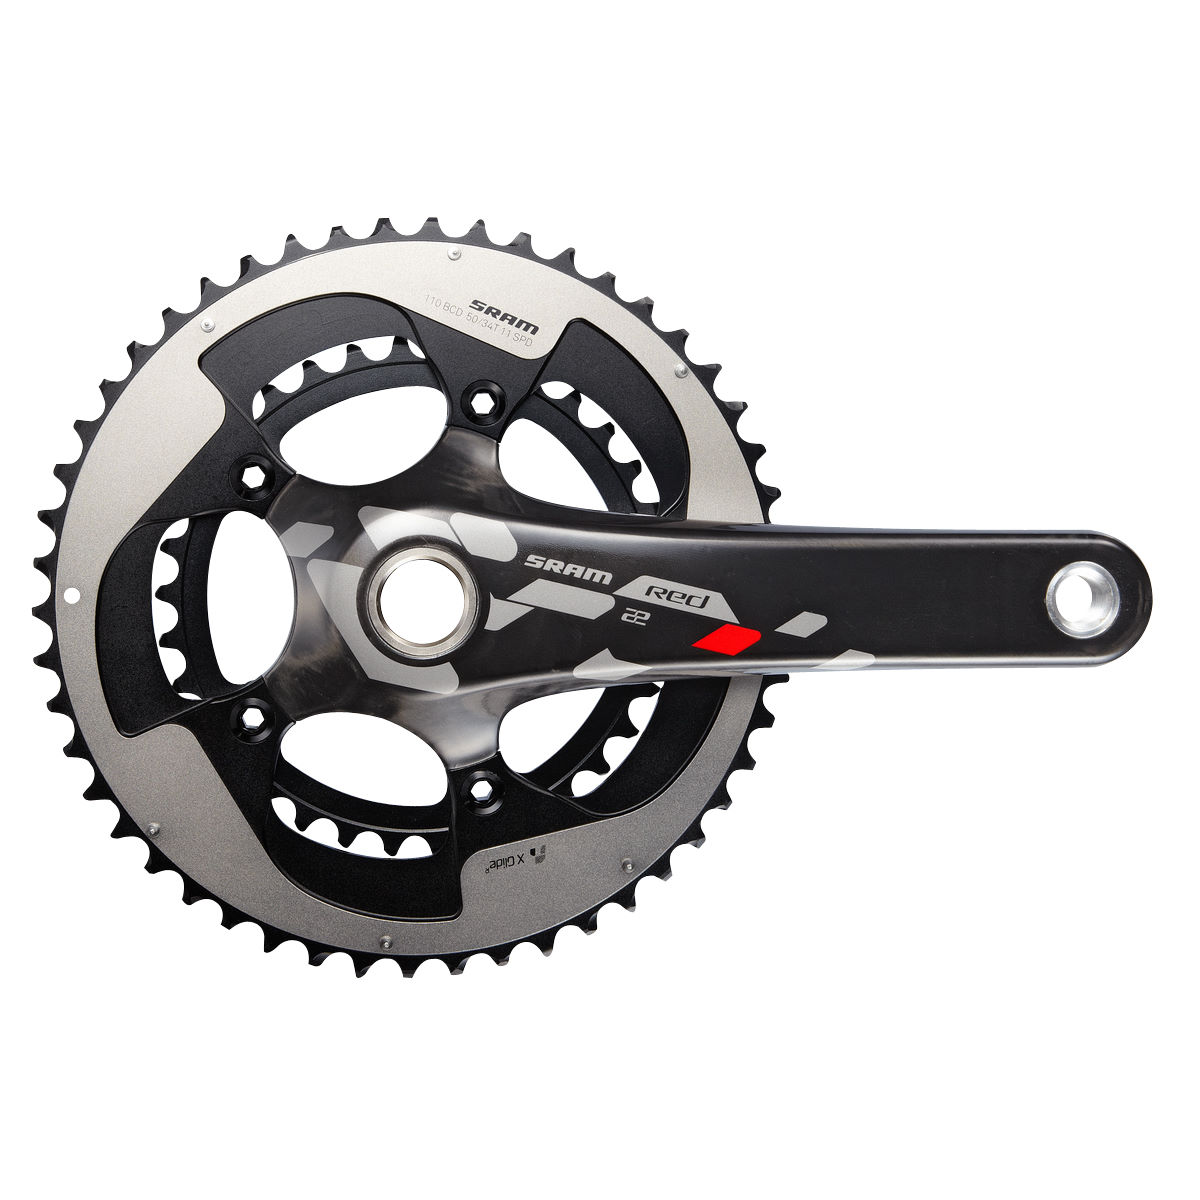 SRAM Red 22 BB30 Double Chainset